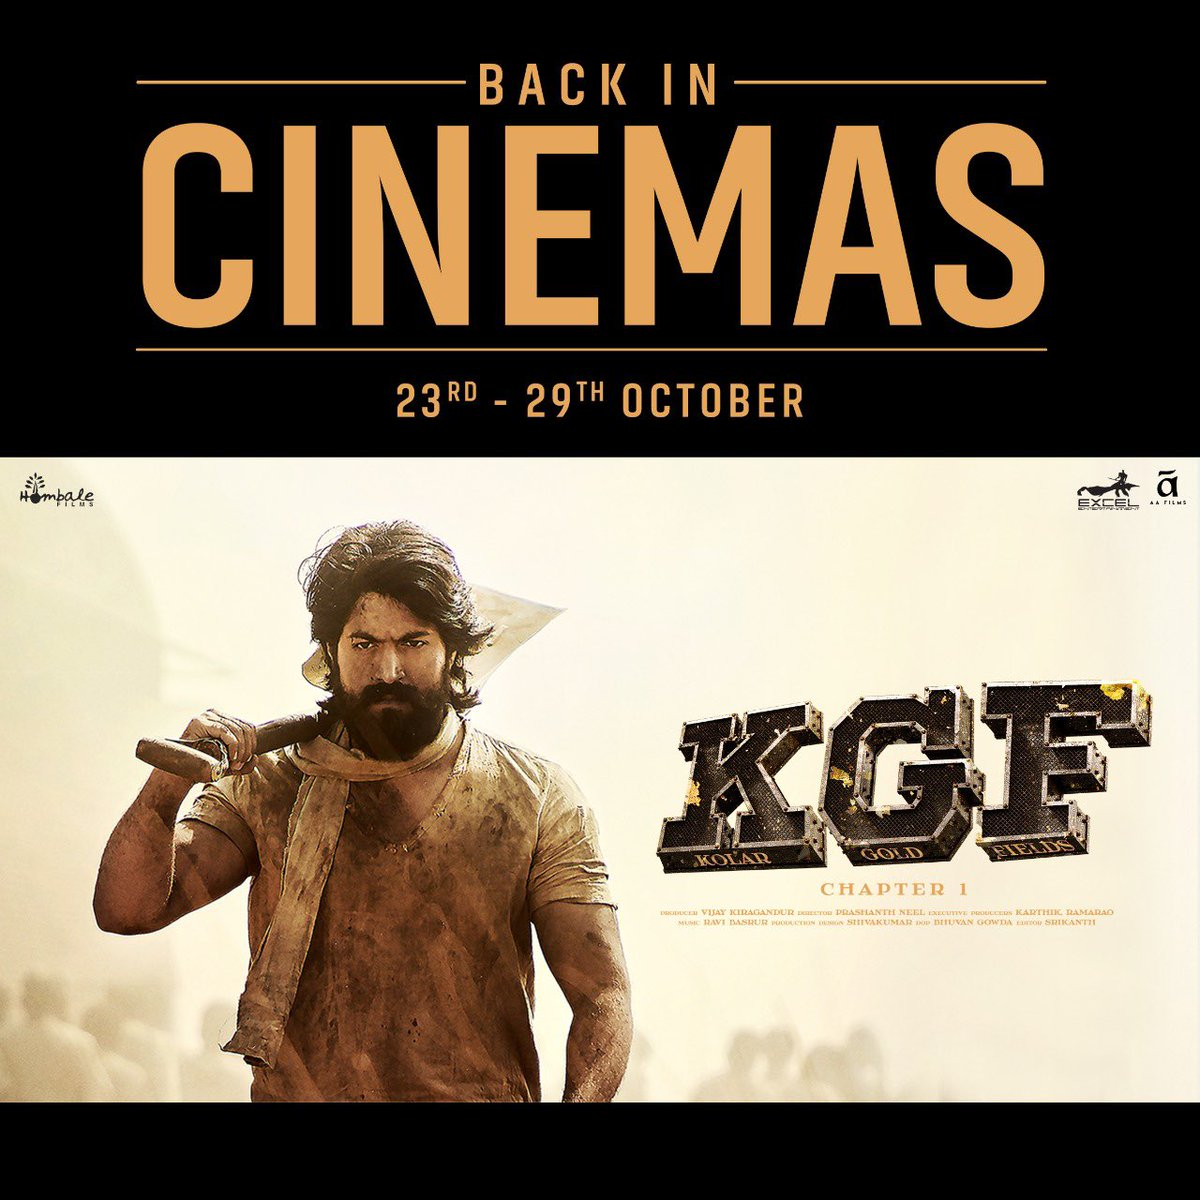 Mask, Distance, Action! Catch the re-release of #KGFChapter1 at cinemas near you between 23rd-29th October. @_PVRCinemas @INOXMovies @IndiaCinepolis  . . @TheNameIsYash @SrinidhiShetty7 @prashanth_neel @VKiragandur @hombalefilms @excelmovies @FarOutAkhtar #AAFilms